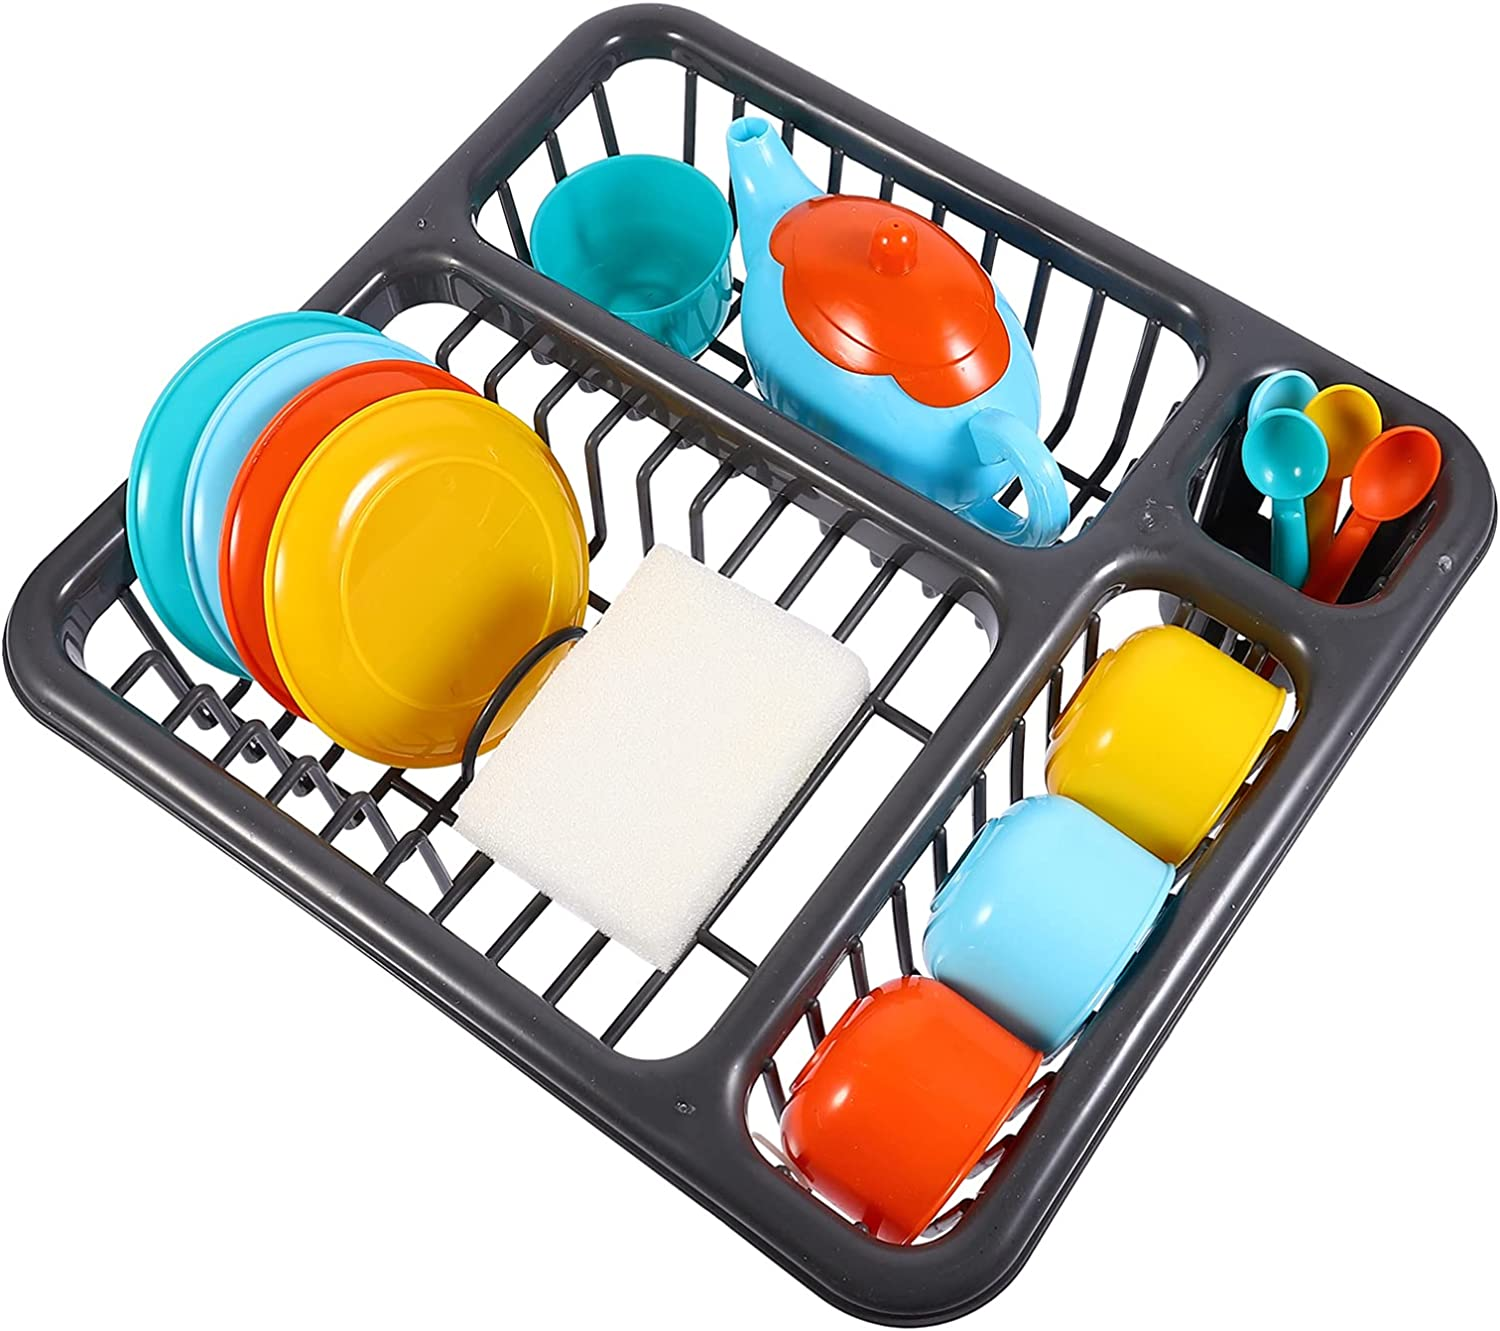 NUOBESTY Kitchen Toys Department store 1 Set Low price Dry Wash Dish 15pcs Toy